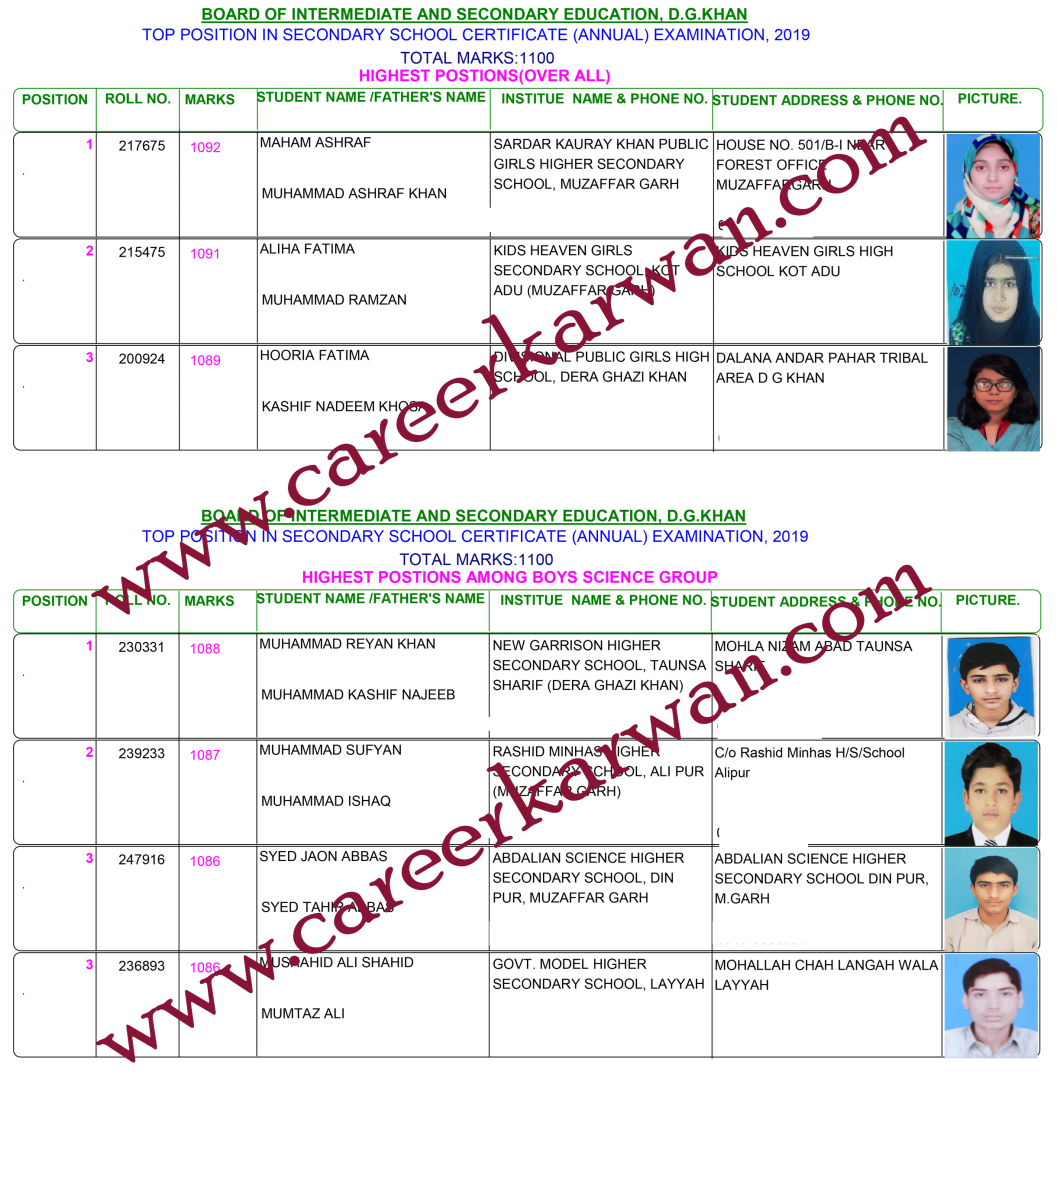 10th Class Result BISE DG Khan Board - DG Khan Board 10th Class